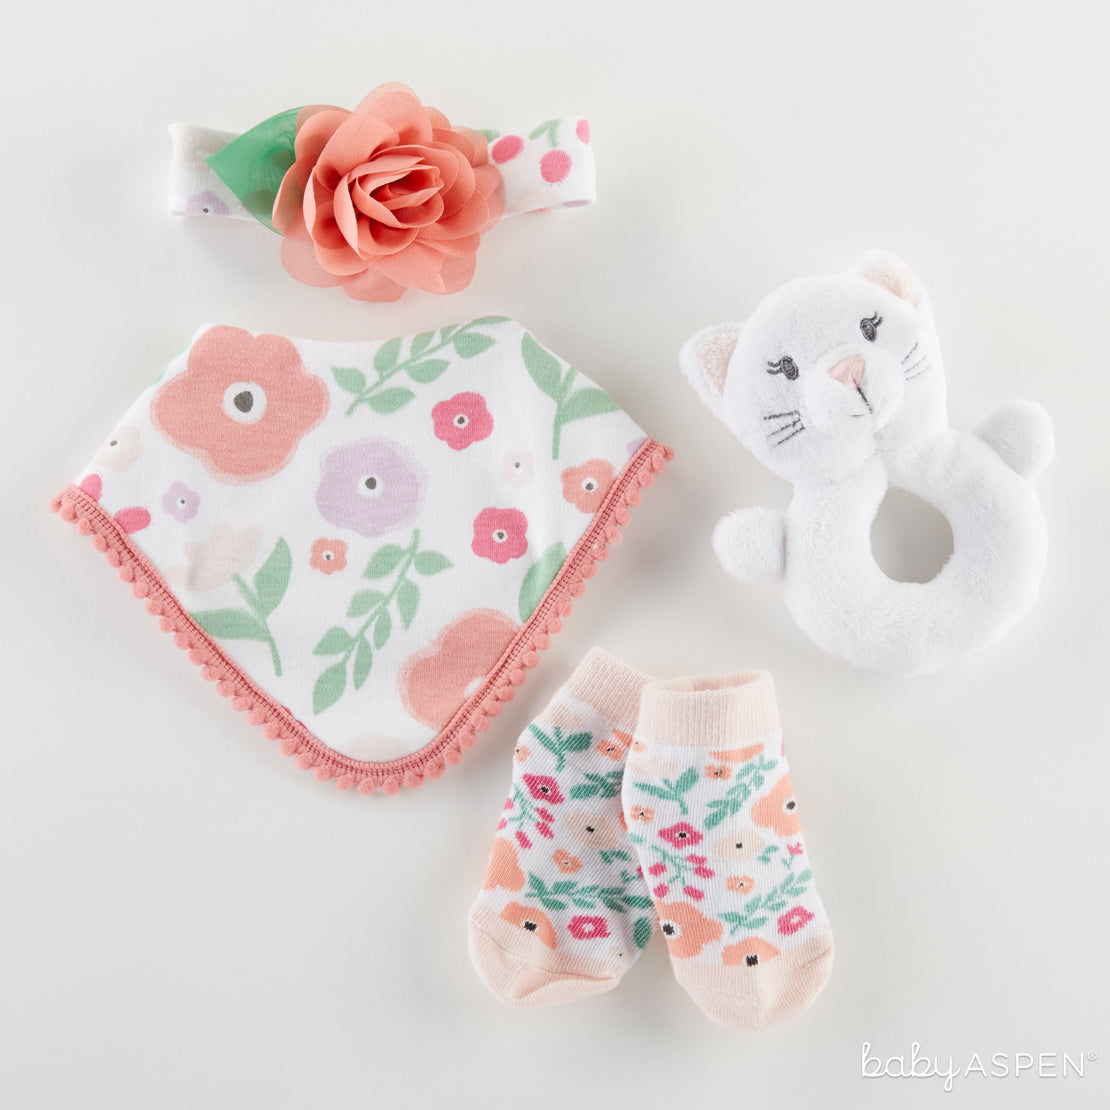 Pretty Posies 4-Piece Gift Set | Purrrfectly Adorable Gifts For Baby + A Giveaway | Baby Aspen